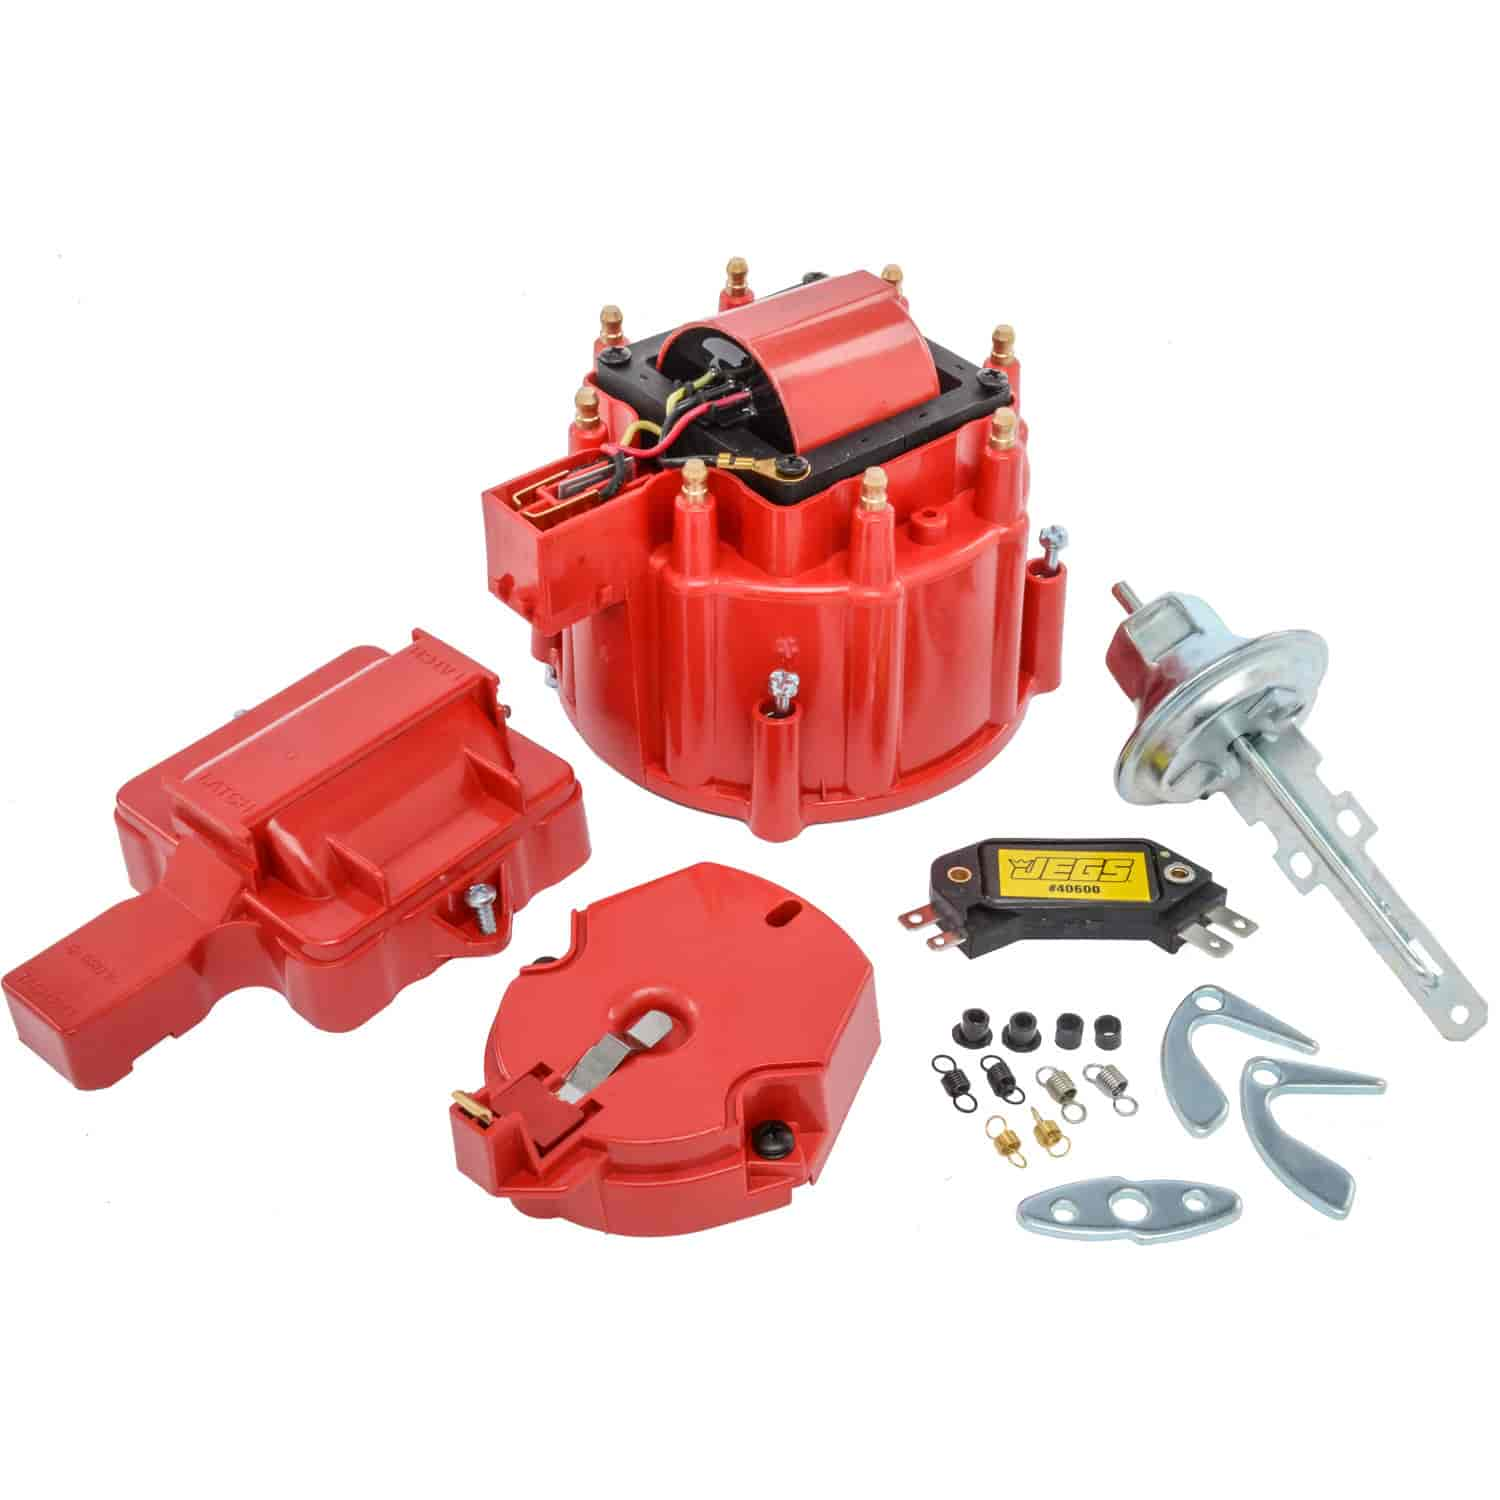 JEGS Performance Products 40009 - JEGS High-Performance HEI Ignition Tune-Up Kits